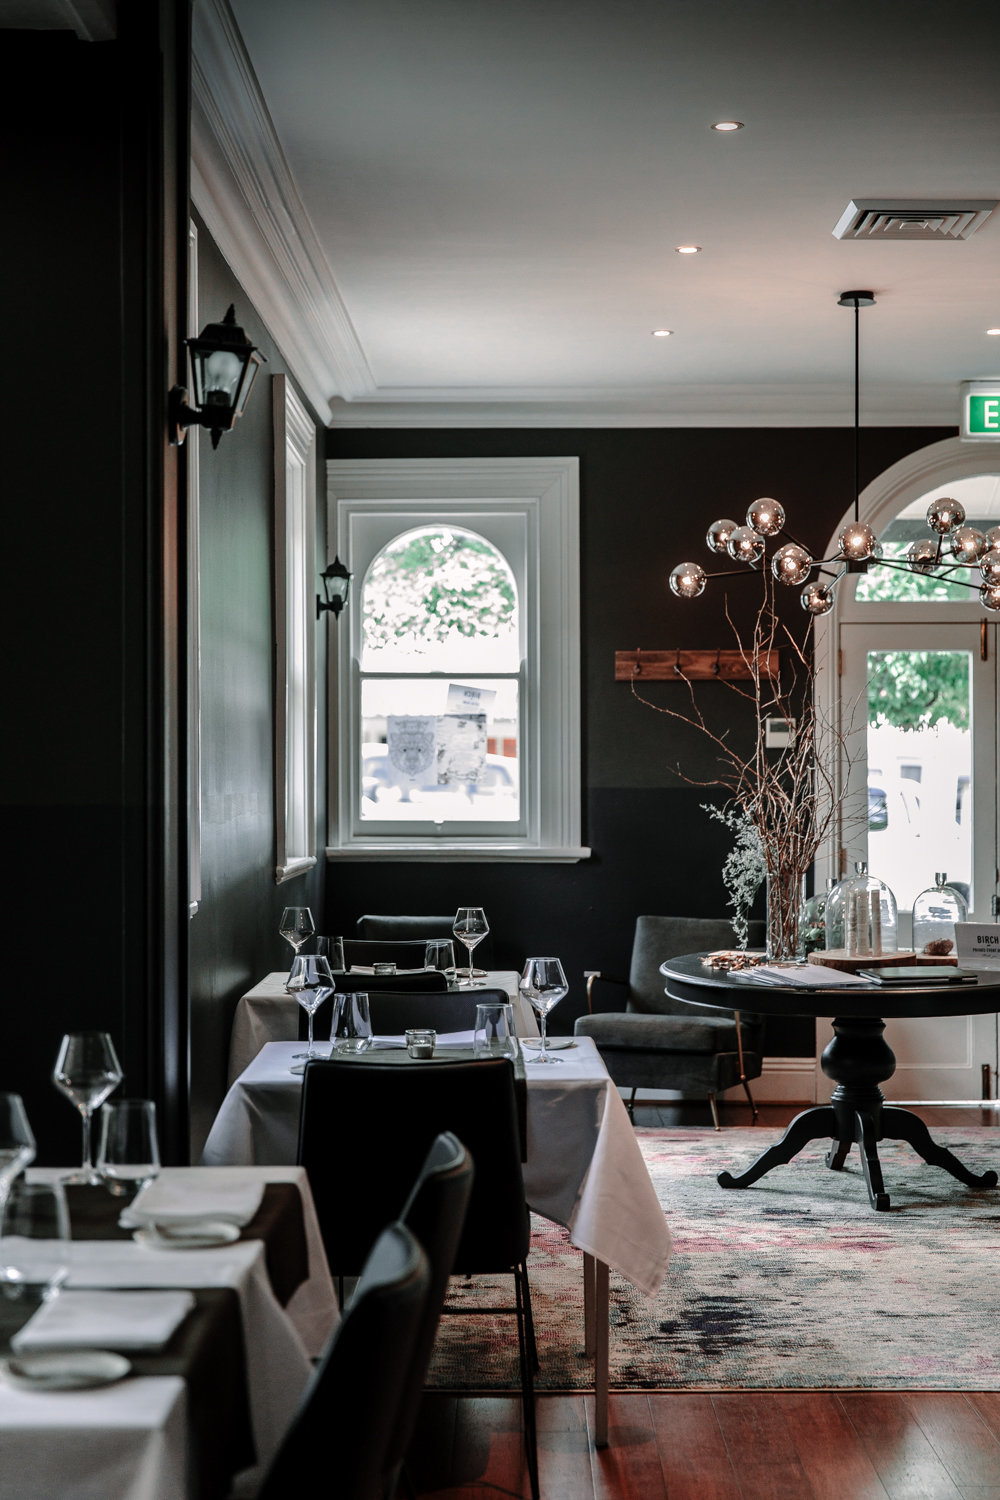 Birch Restaurant | Moss Vale | Anisa Sabet | The Macadames1